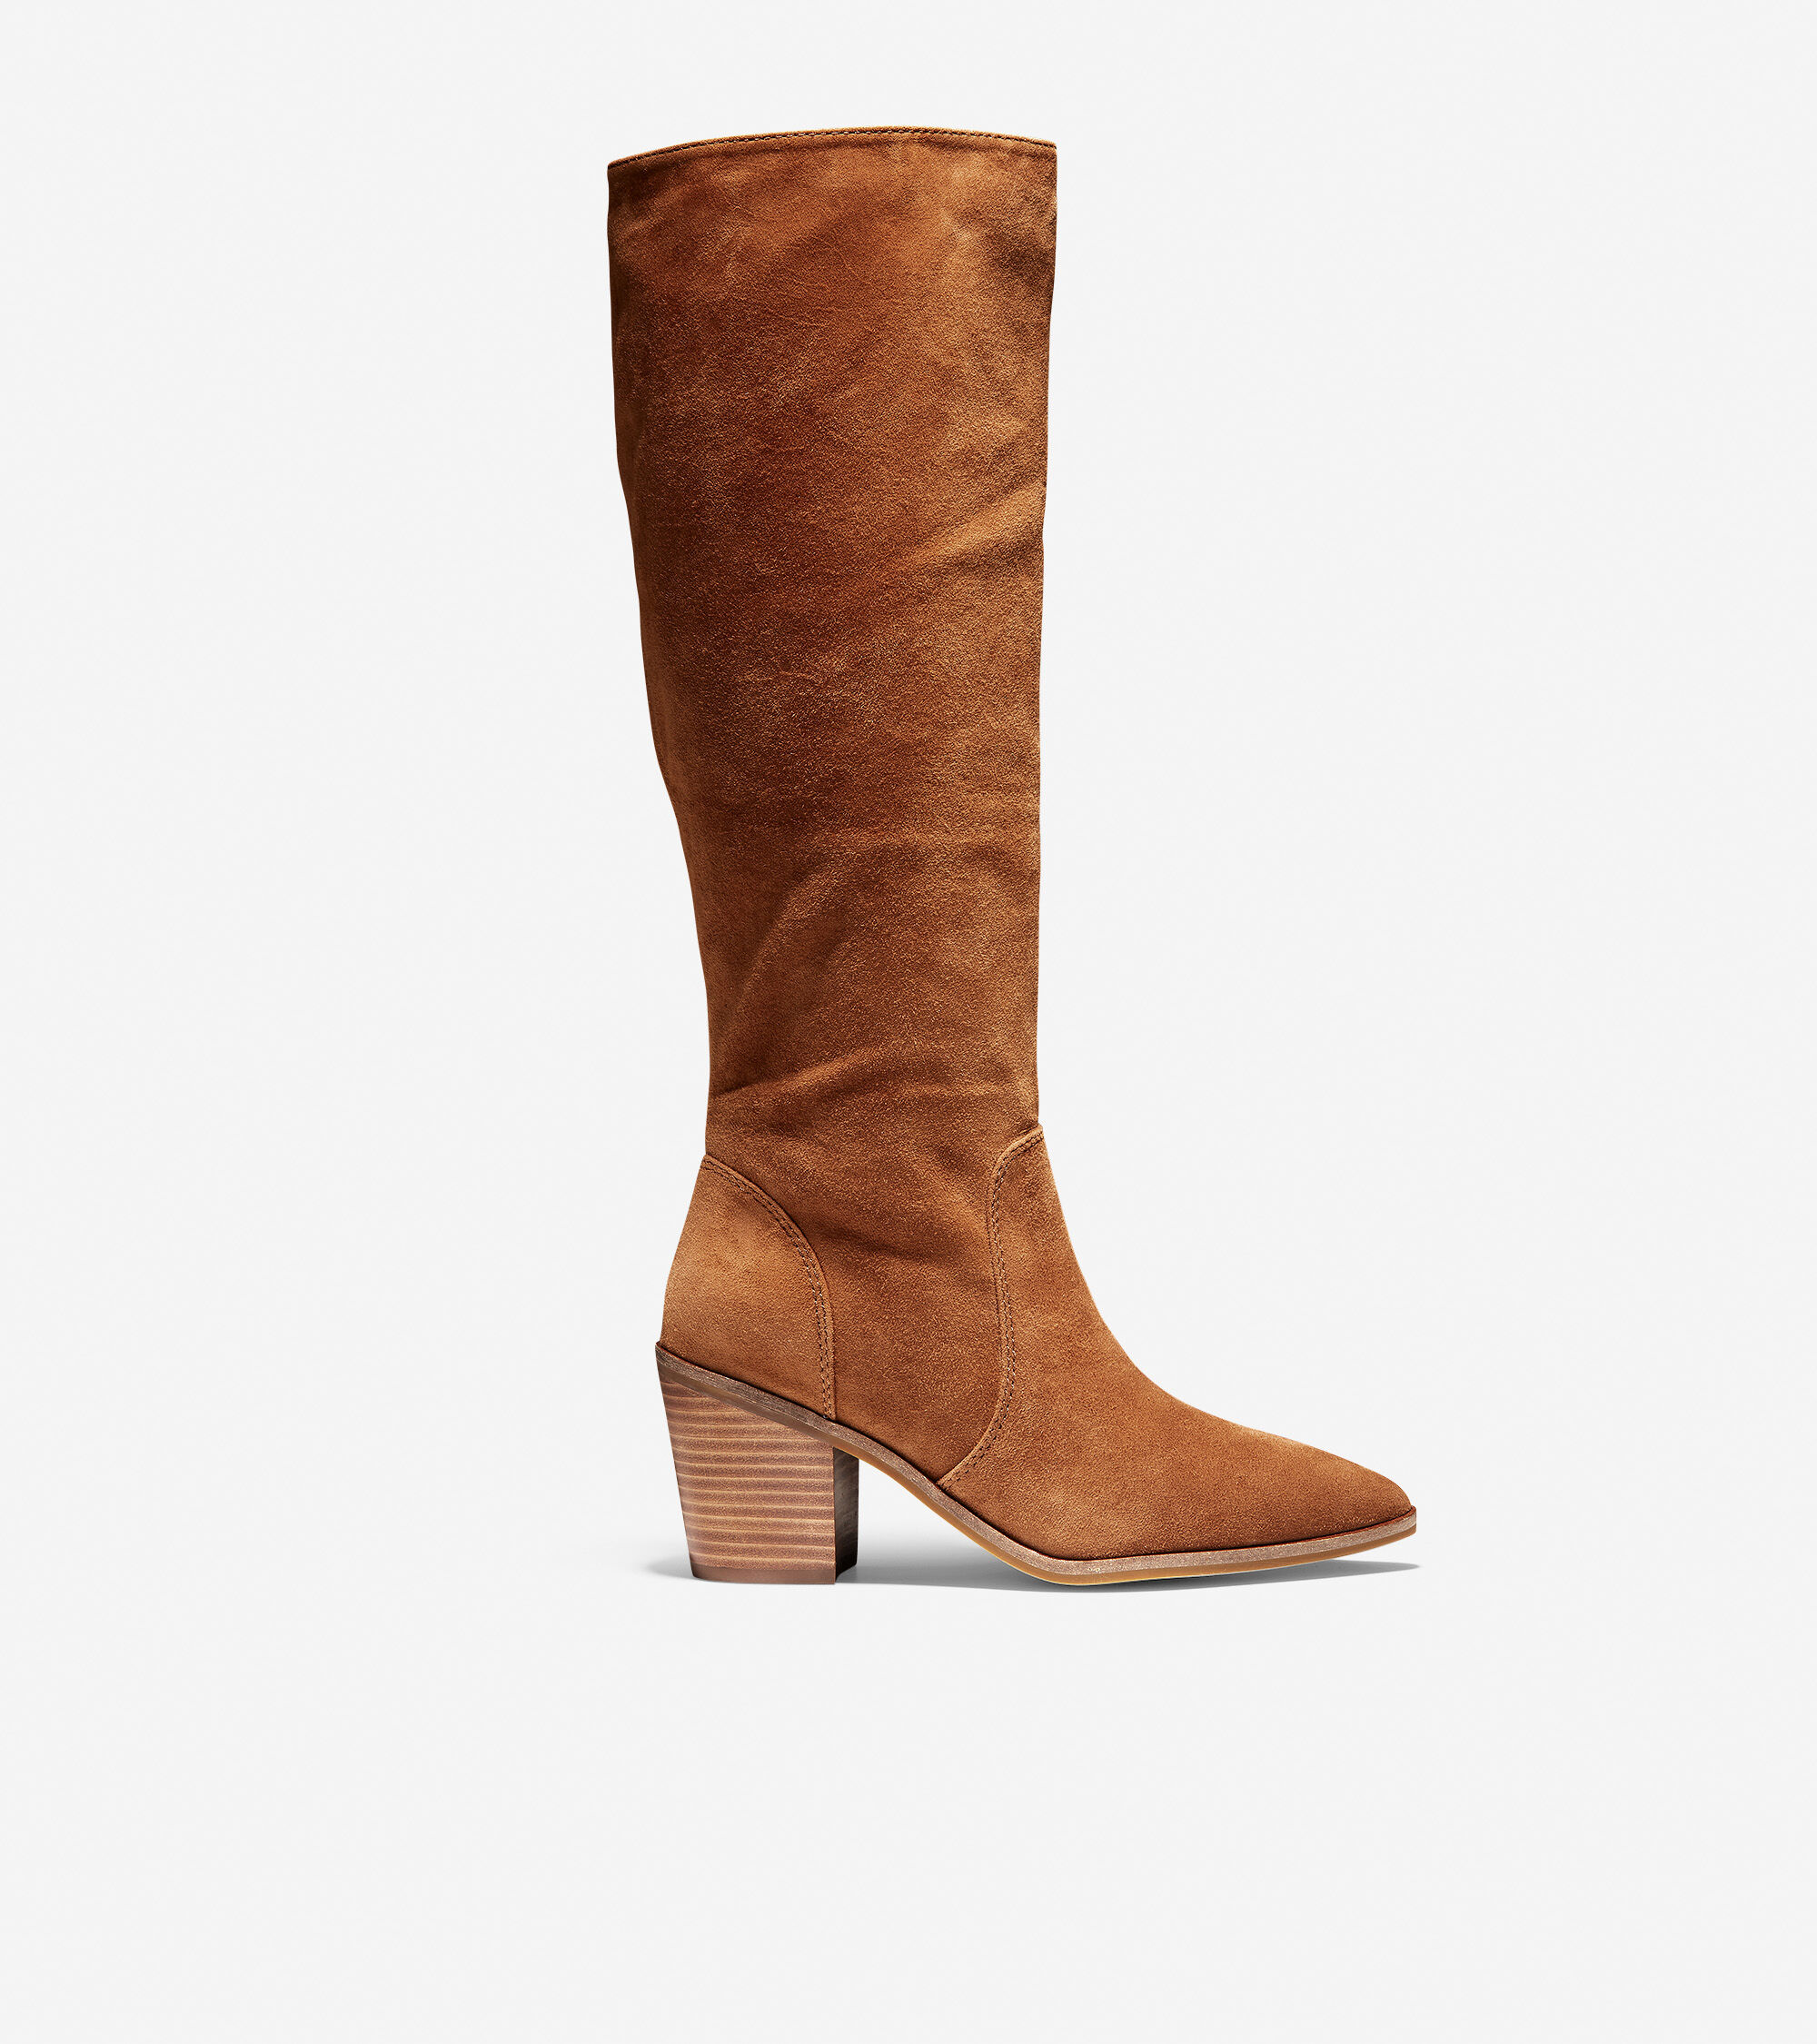 Willa Boot (75mm) in British Tan Suede